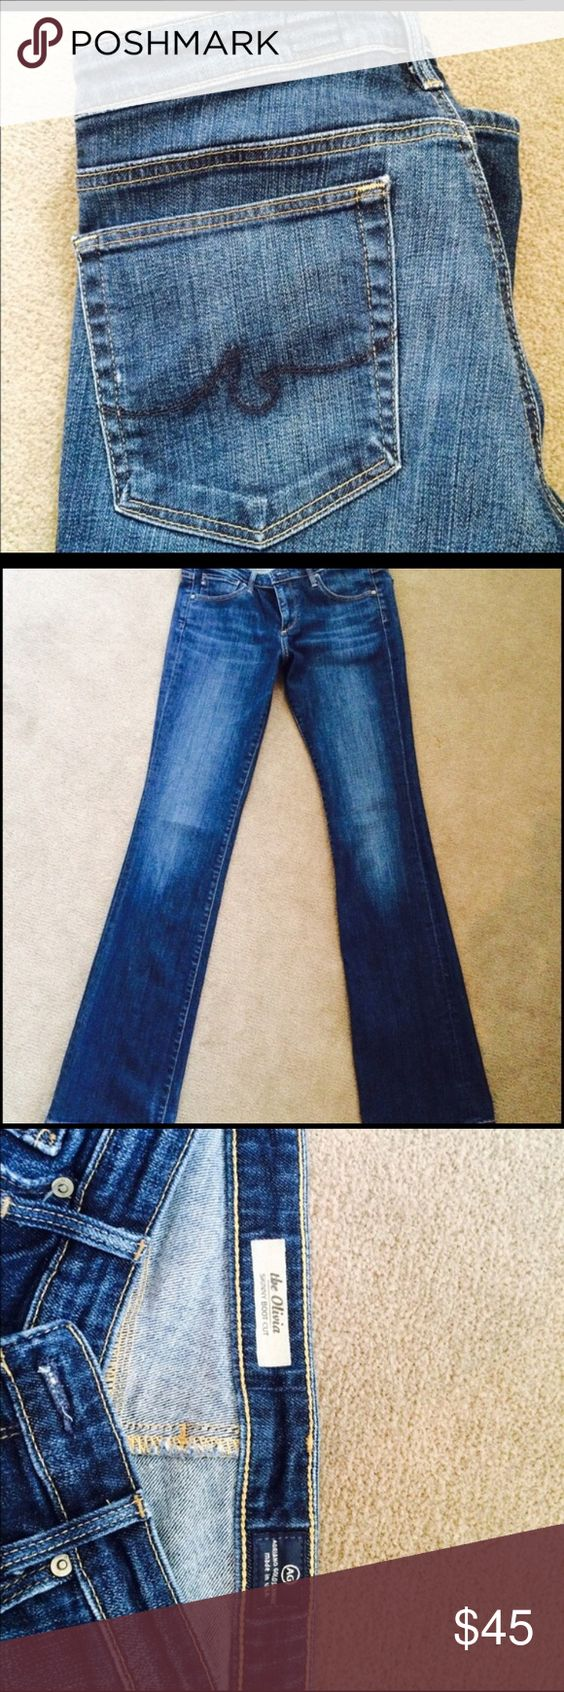 Authentic AG Olivia Skinny Bootcut Jeans Size 30 regular authentic AG Olivia jeans. Just purchased, but too small. Minimal signs of wear. 33.5 inseam. AG Adriano Goldschmied Jeans